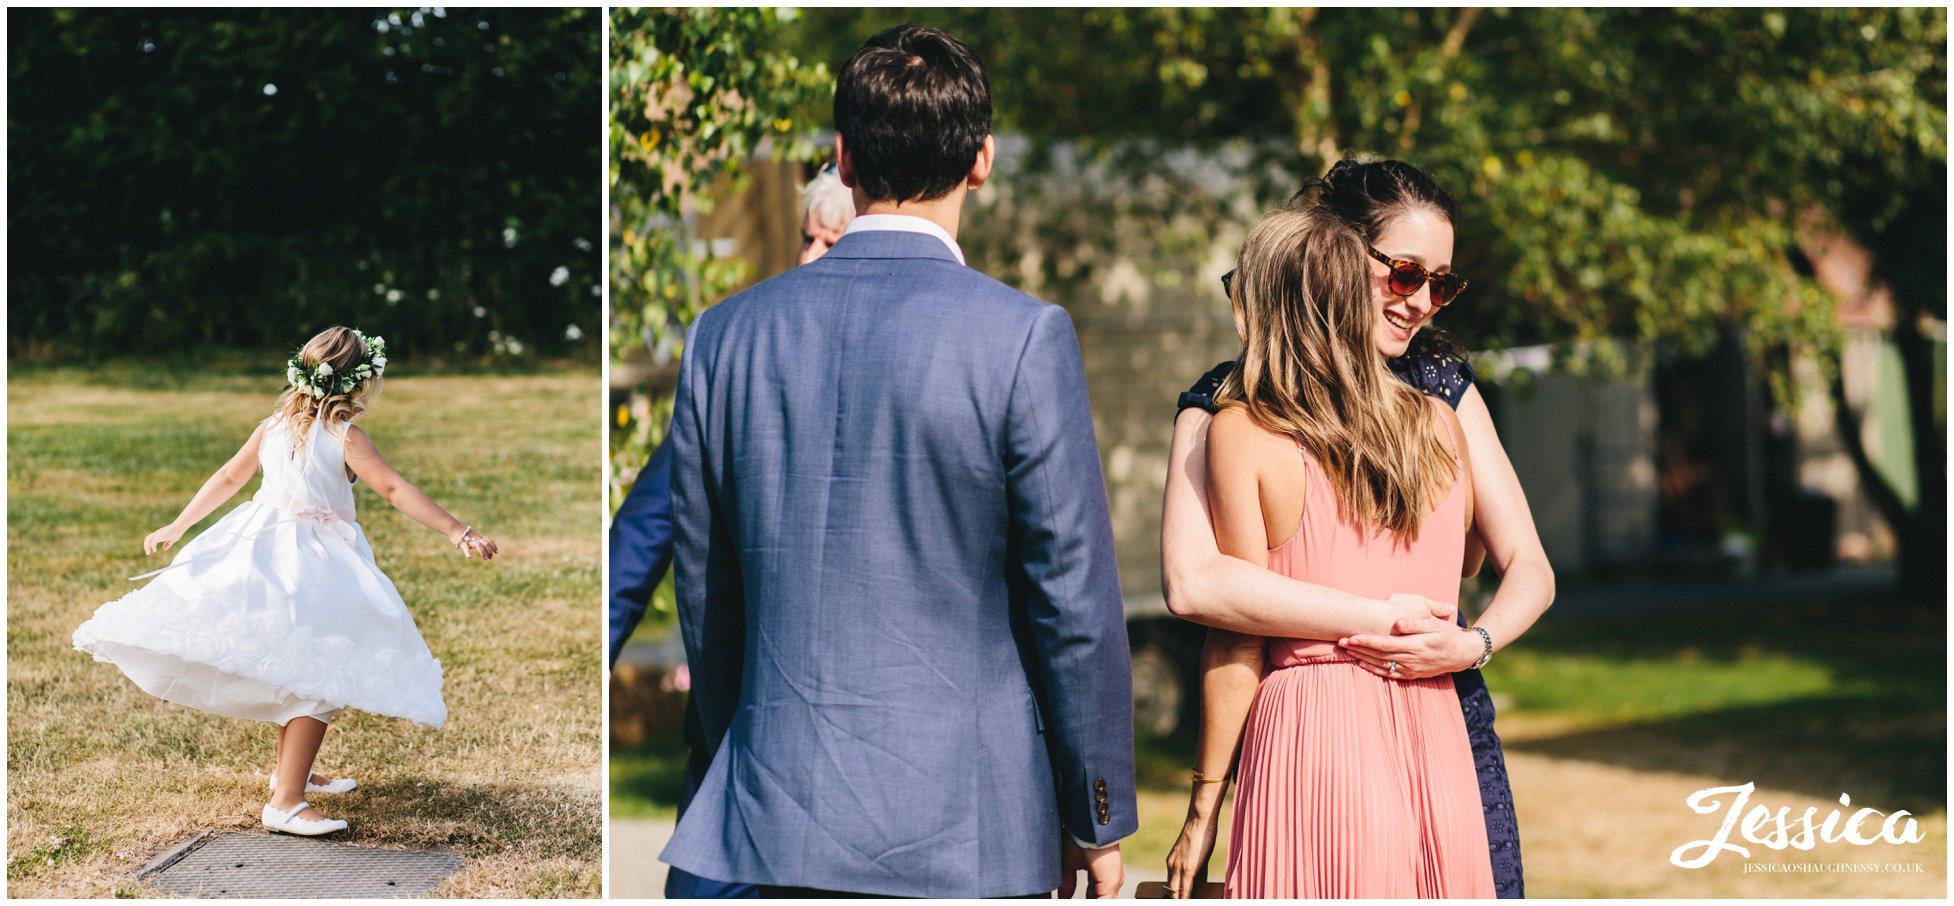 guests greet each other after the outdoor wedding ceremony